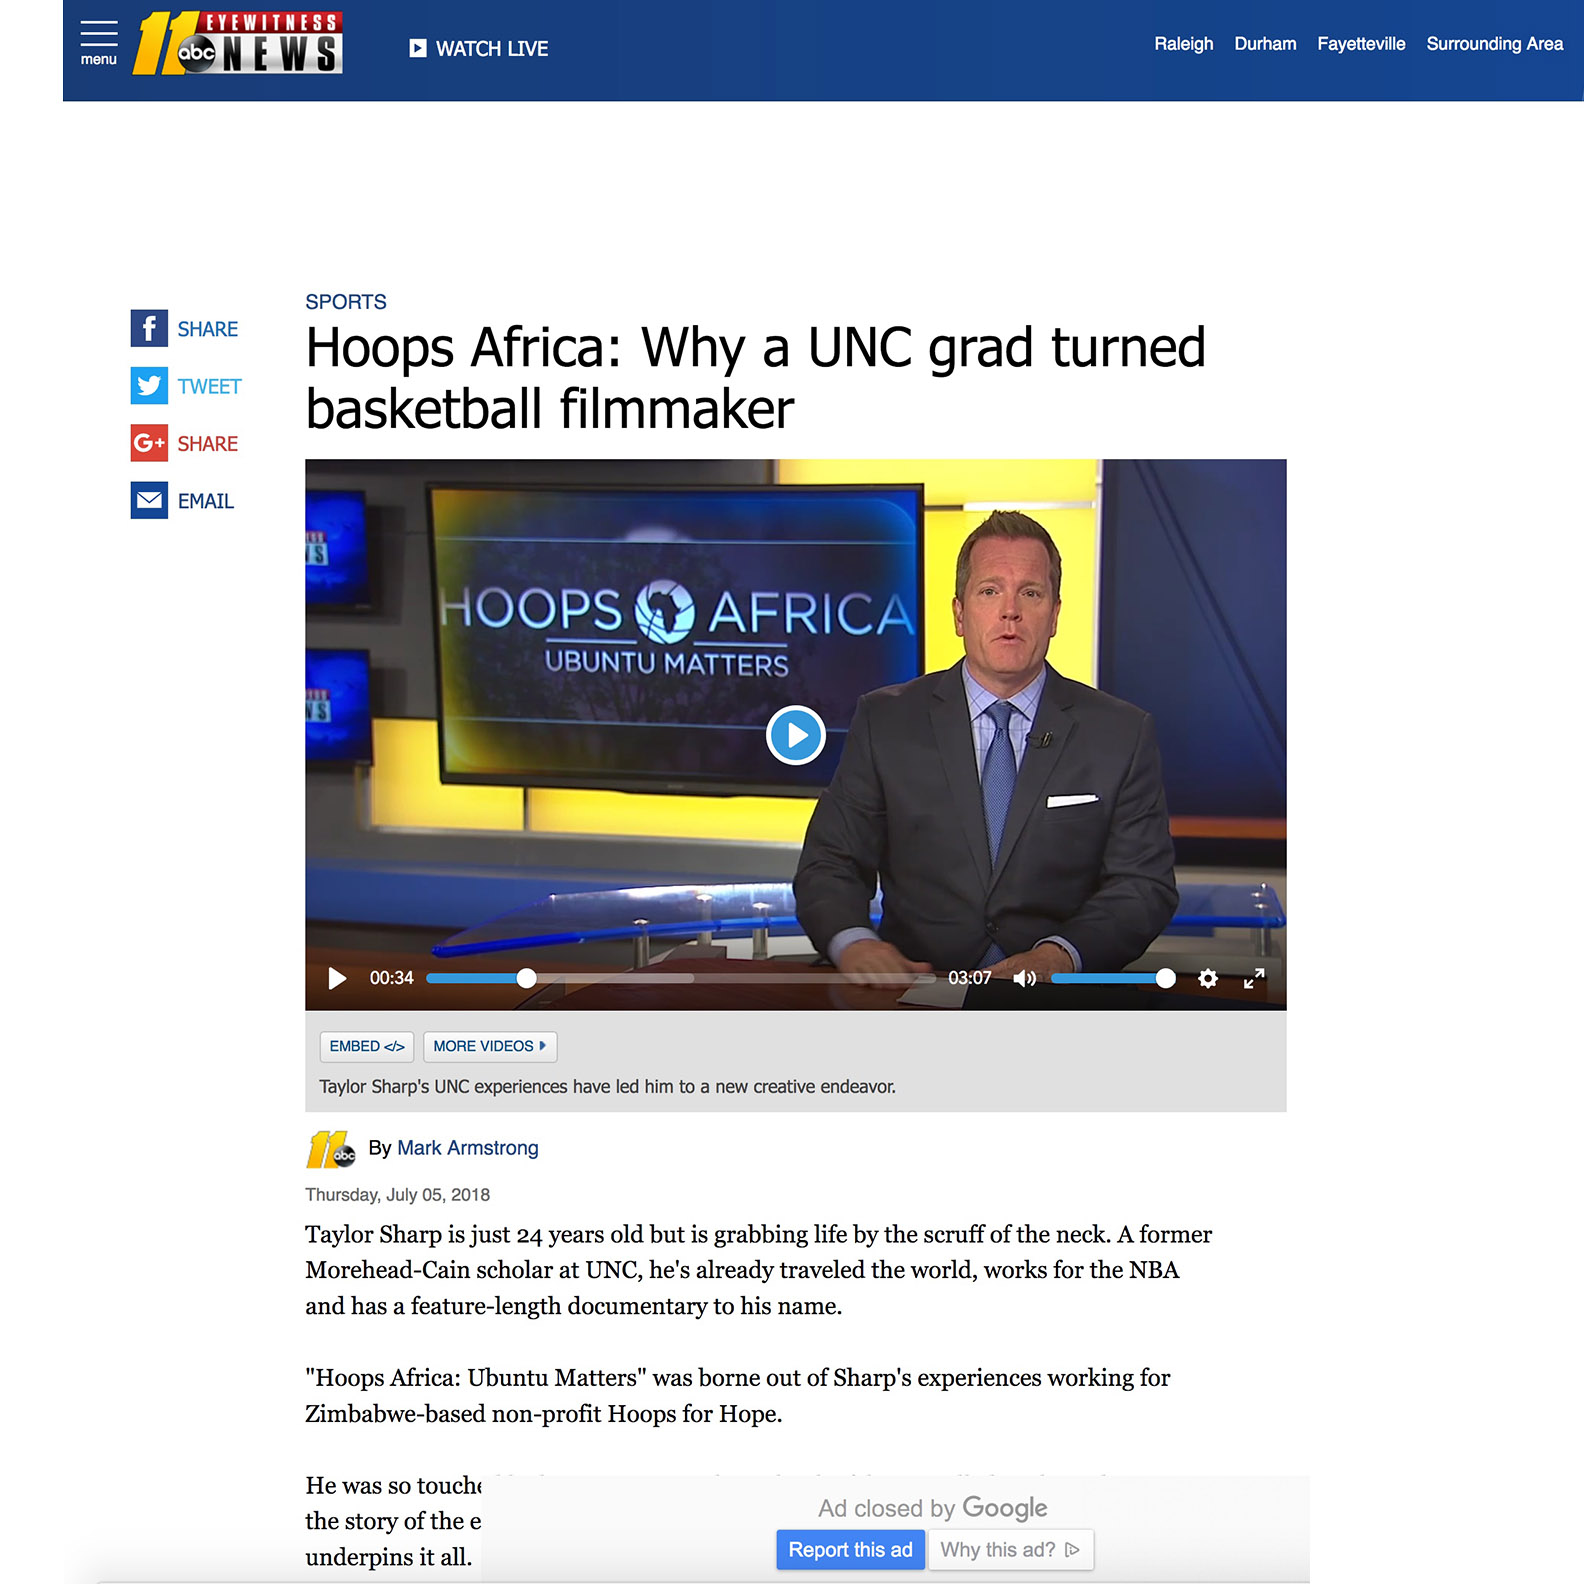 ABC 11 News   Video - Hoops Africa: Why a UNC grad turned basketball filmmaker